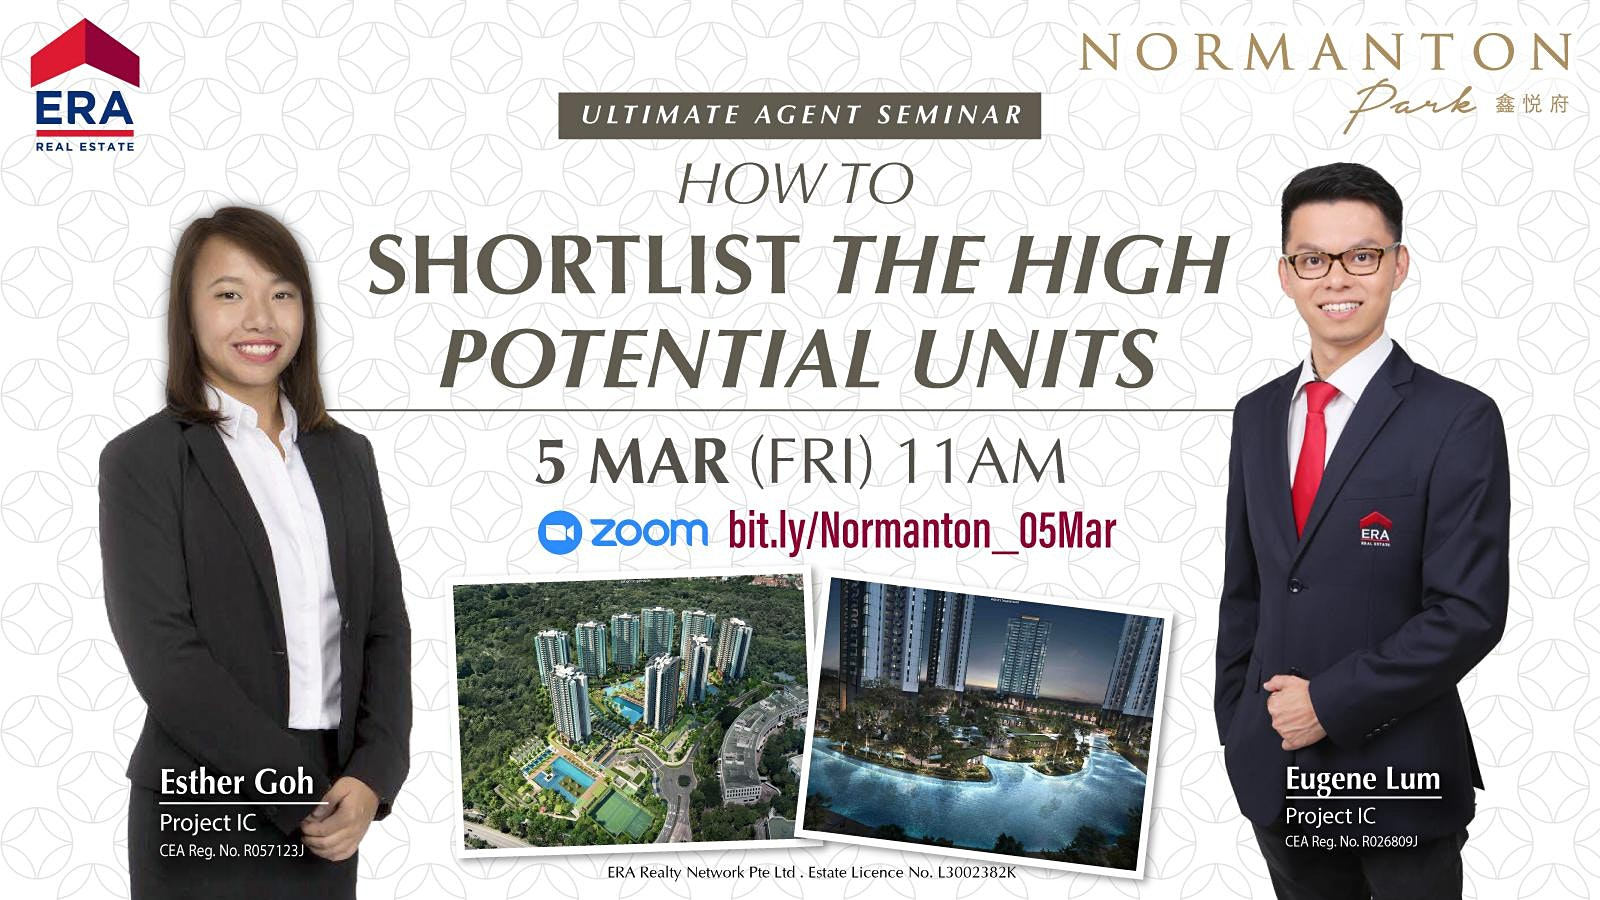 How to Shortlist the High Potential Units? (Normanton Park)